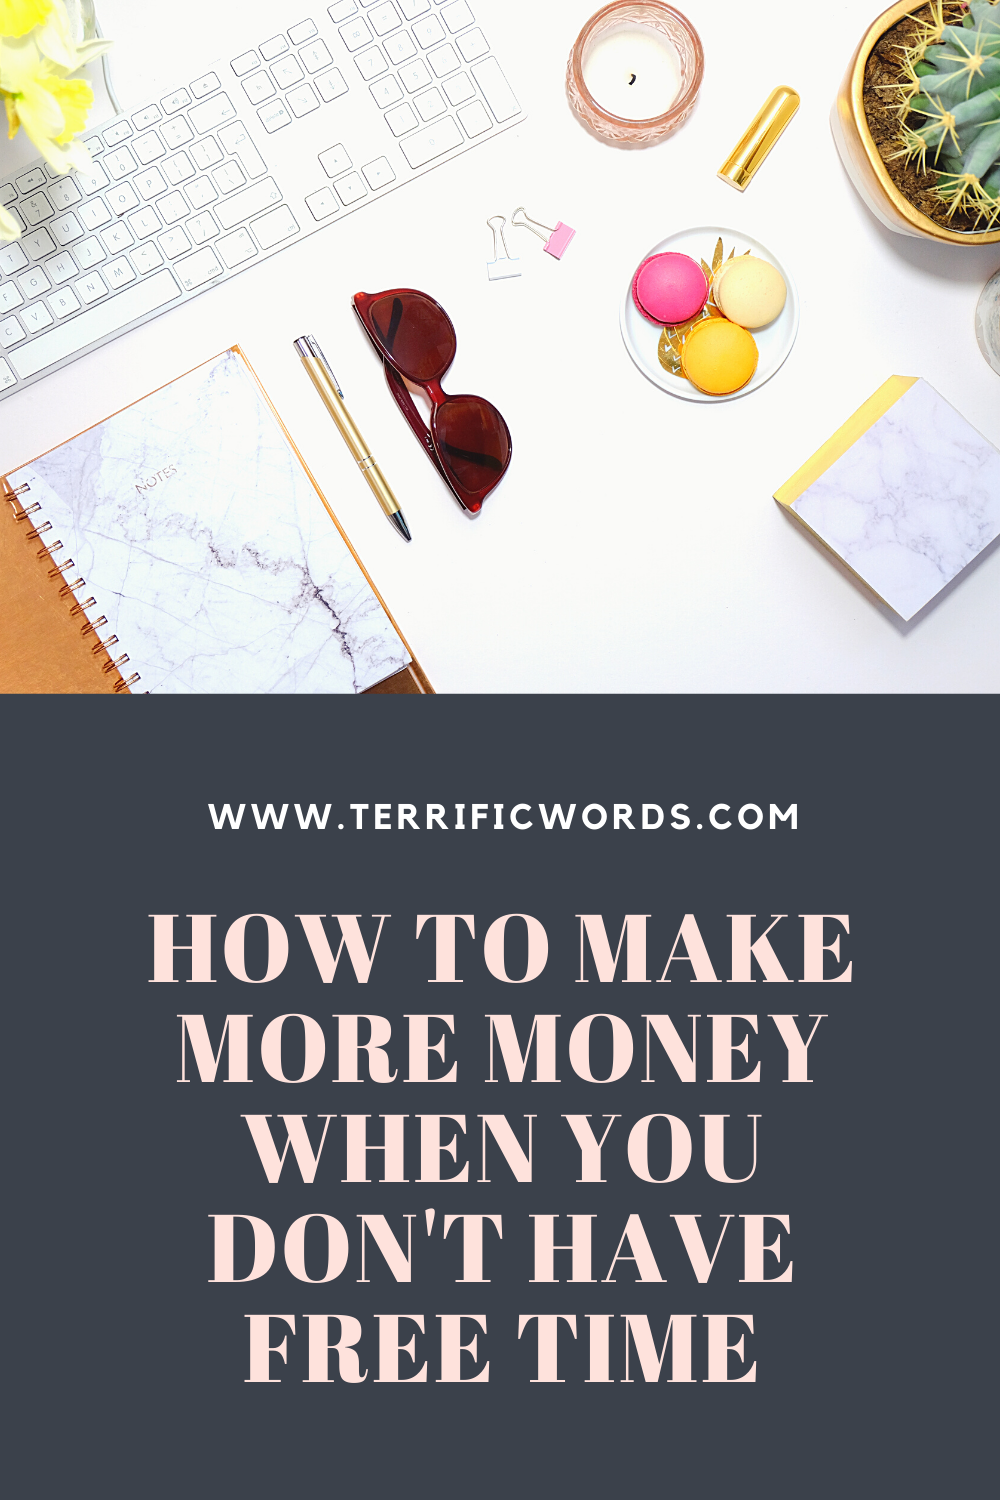 How to make money when you don't have free time.